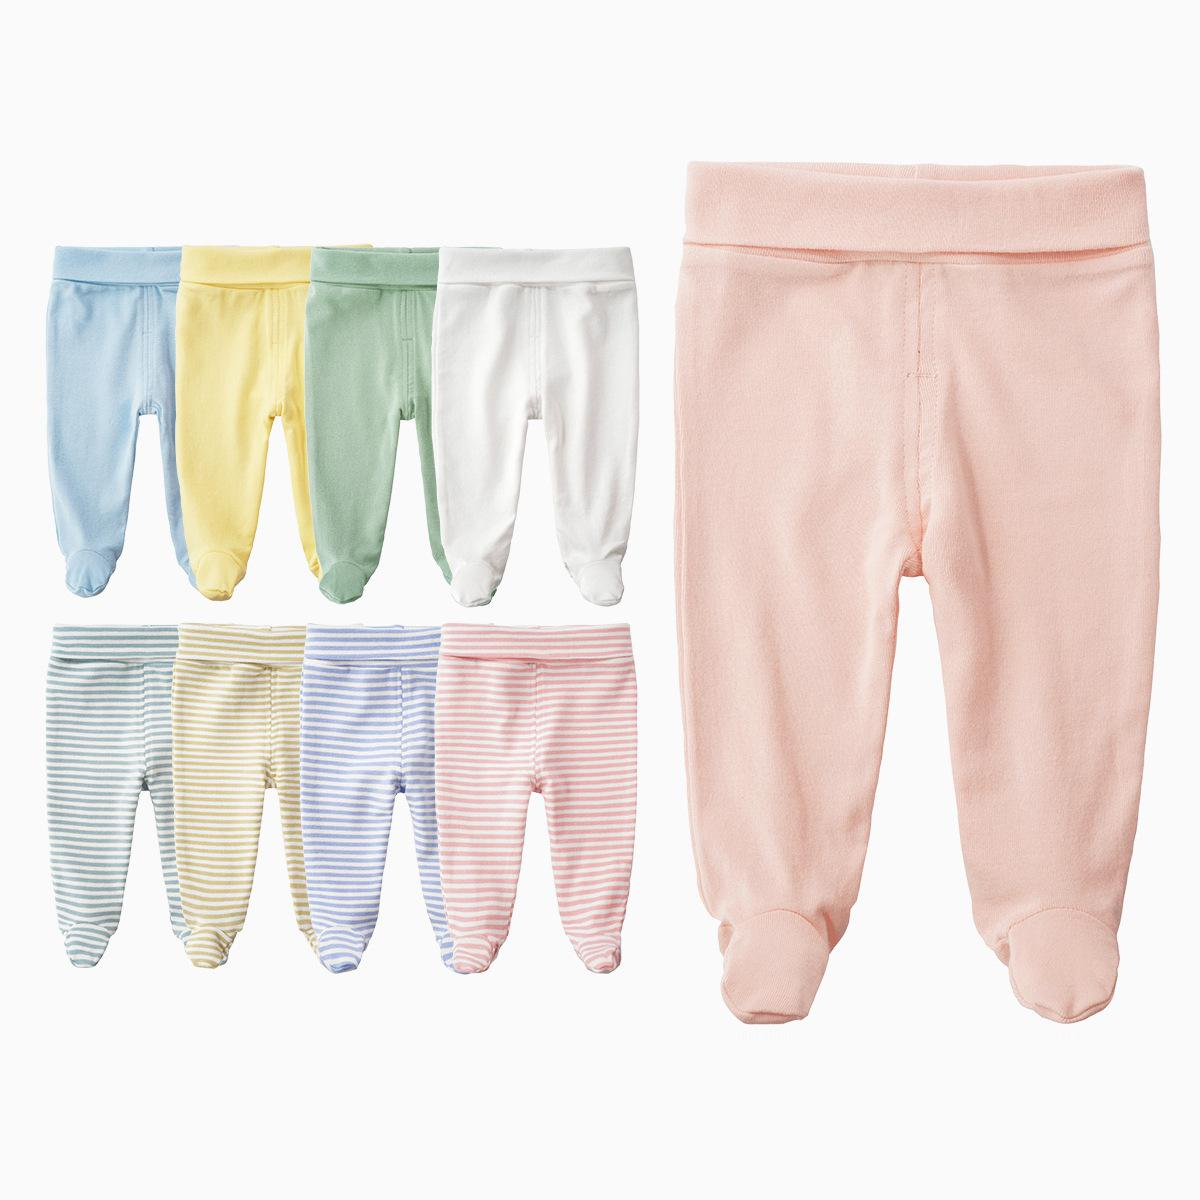 Newborn Unisex Baby Pants 0-3-6M Baby Cotton High Waist Trousers Infant Baby Boys Girls Bag Foot Pants Even Socks Baby Leggings